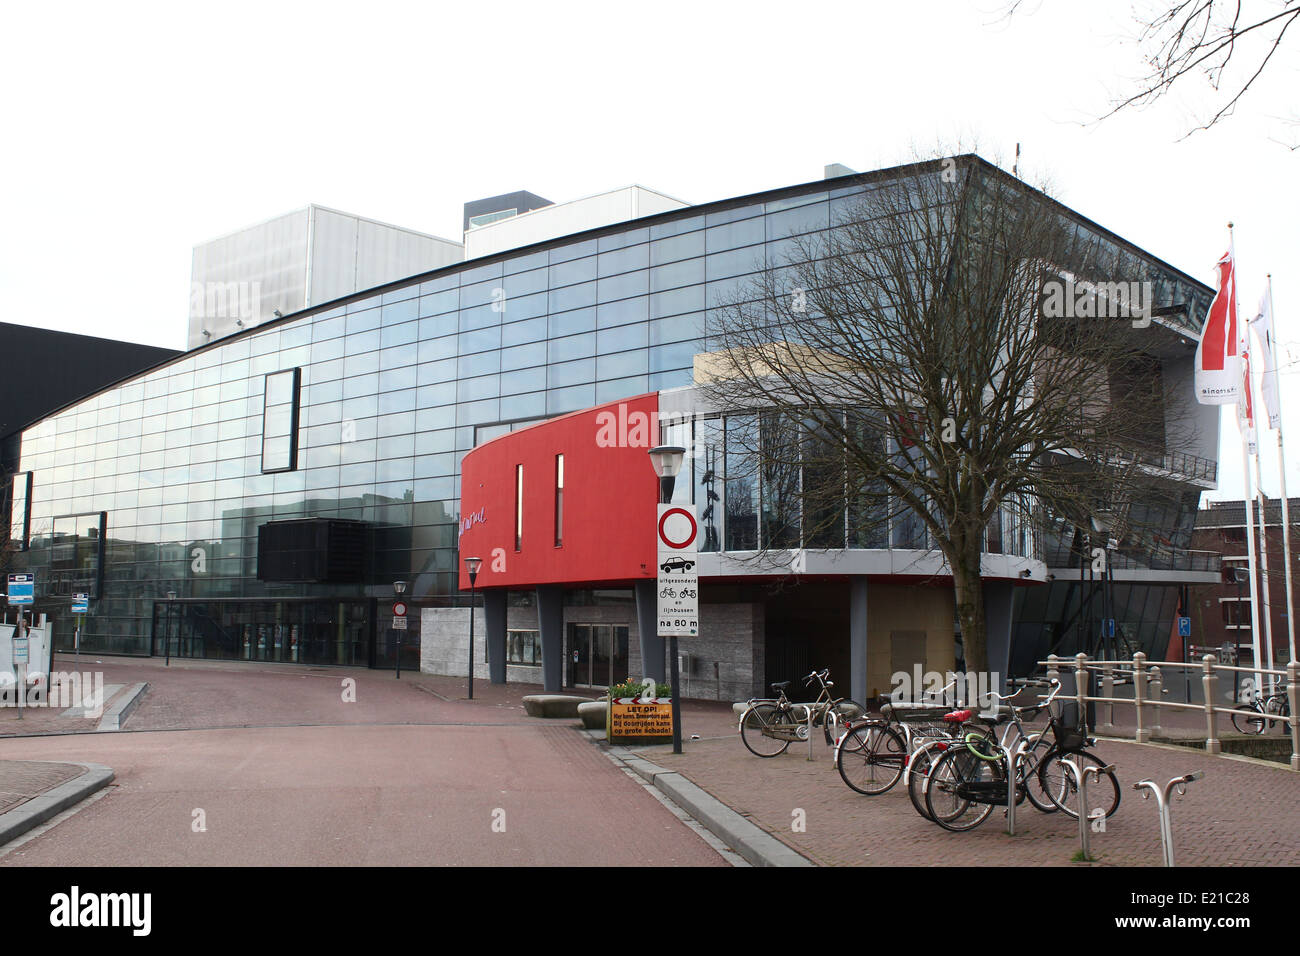 Exterior of 'De Harmonie', large concert-hall and theater in Leeuwarden, capital of Friesland, The Netherlands - Stock Image